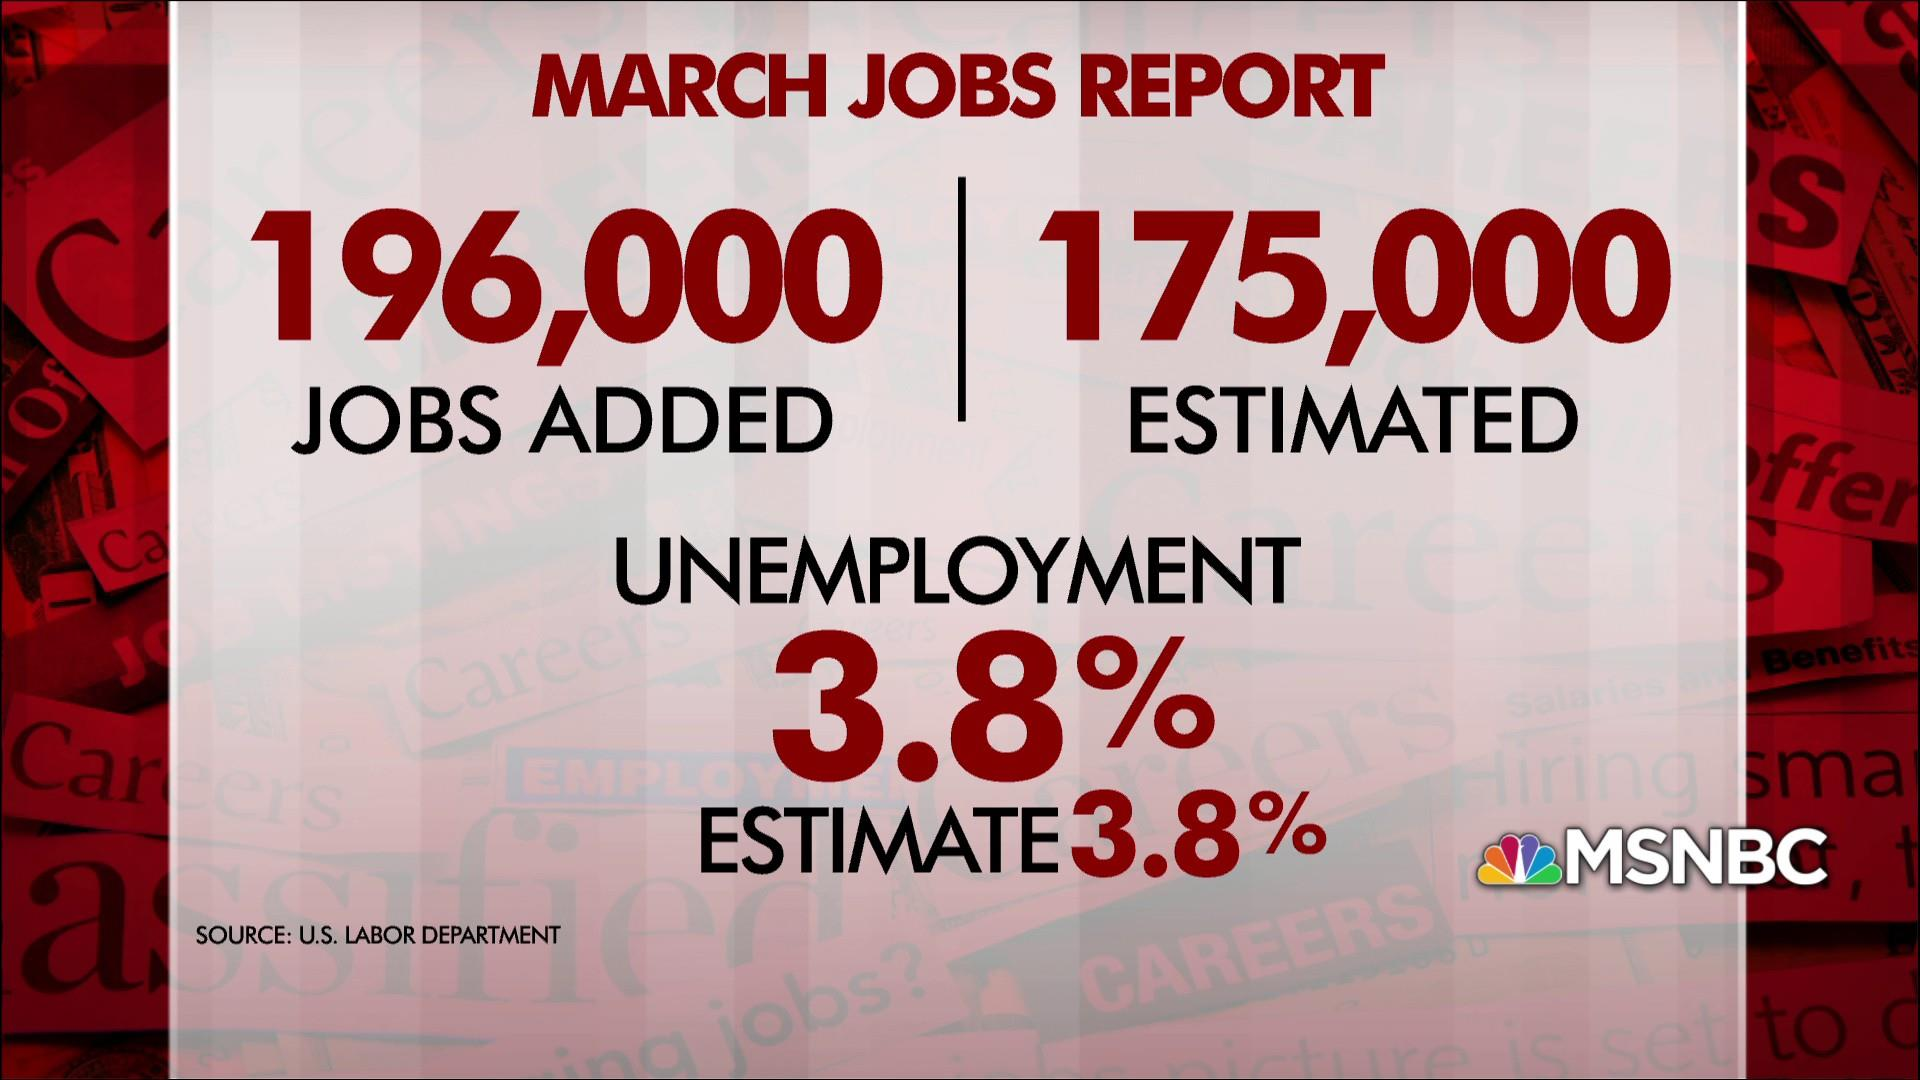 March jobs report: 196,000 jobs added, unemployment rate stays steady